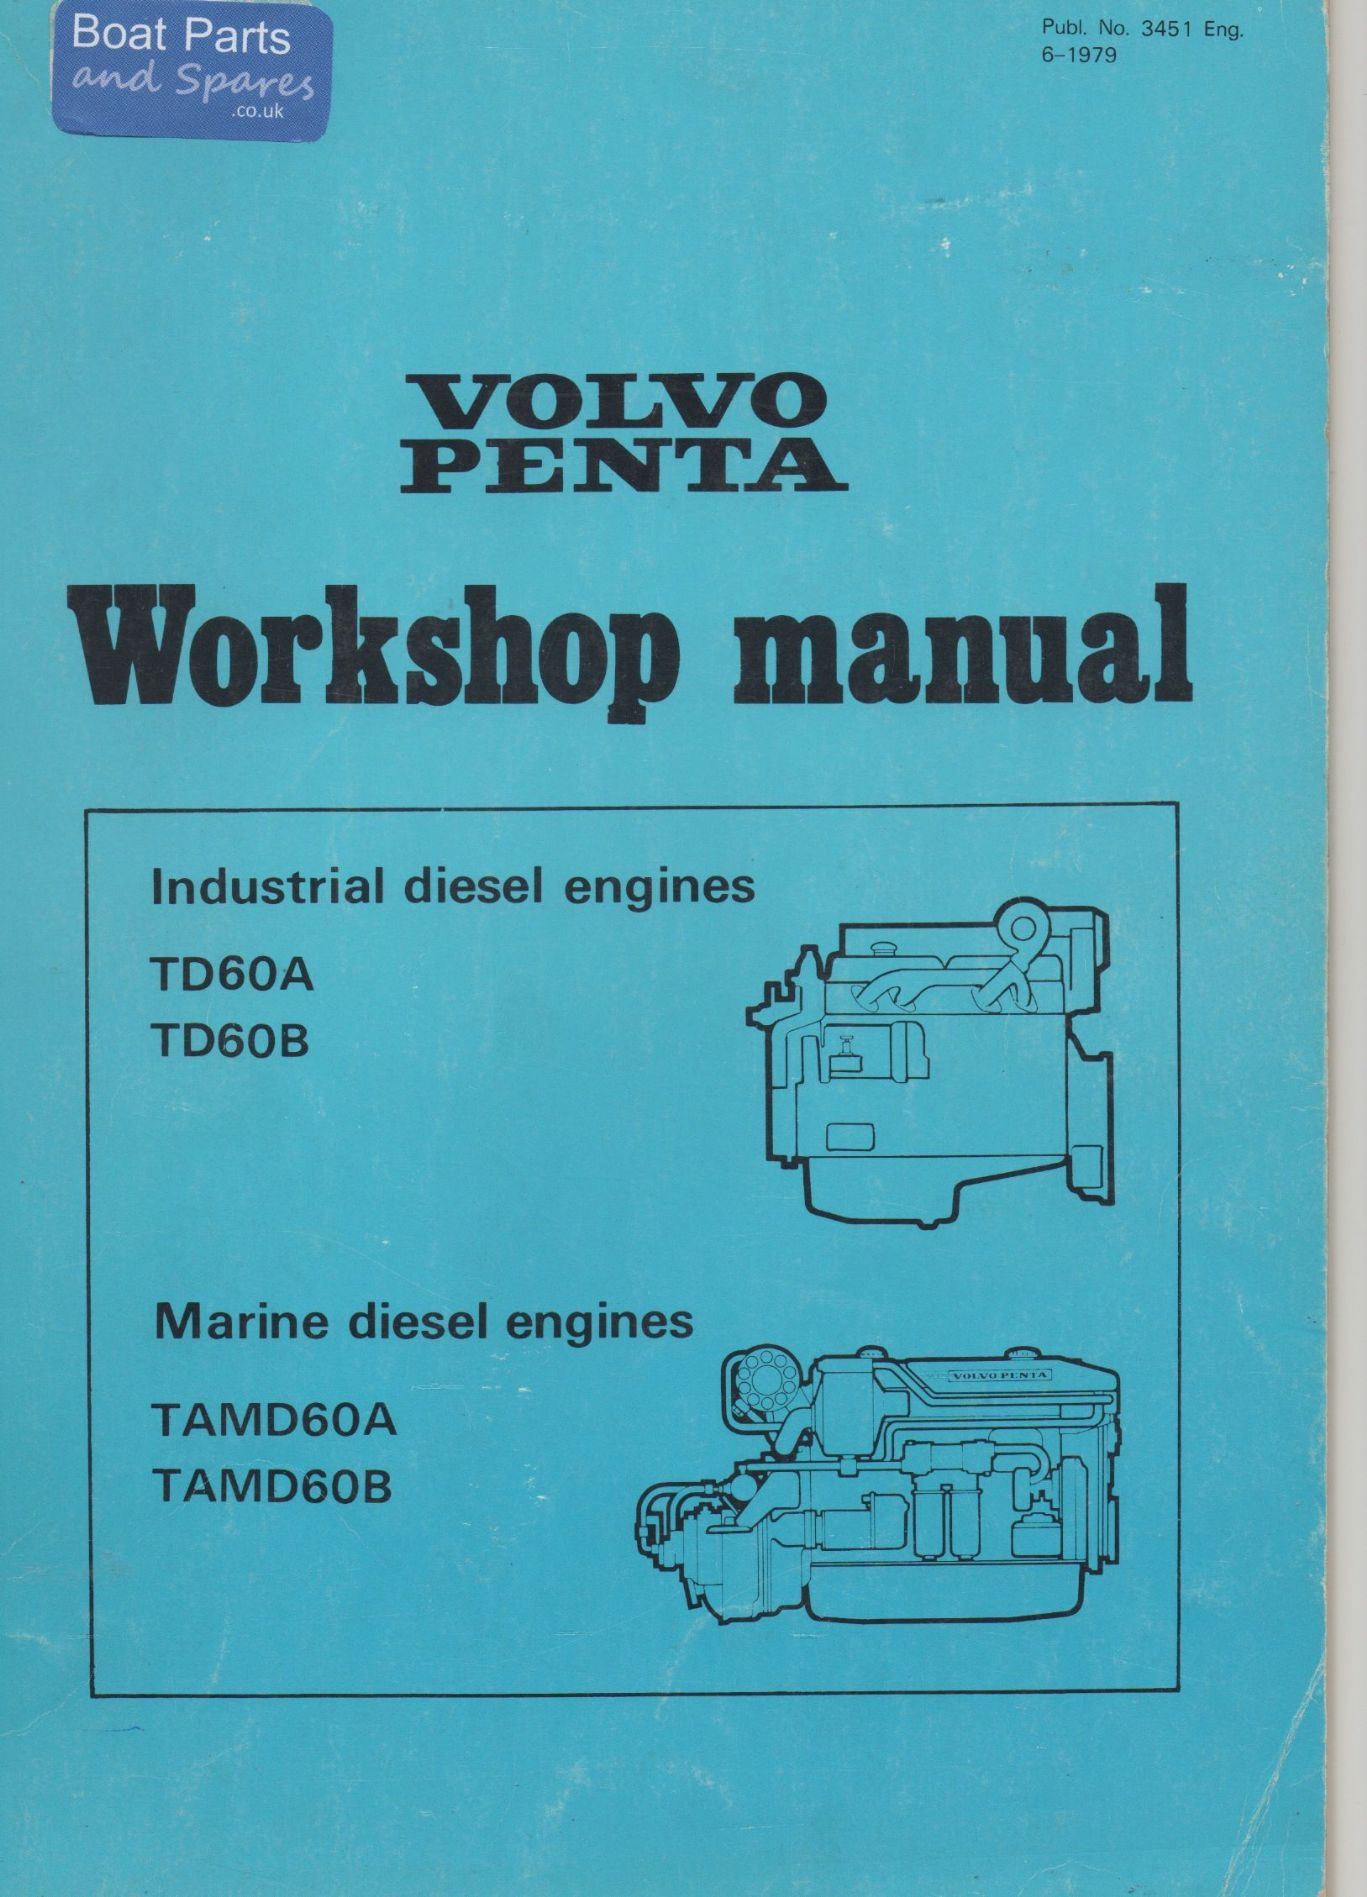 volvo penta td60a td60b tamd60a tamd60b workshop manual rh boatpartsandspares co uk volvo penta shop manual dps-a volvo penta service manual pdf